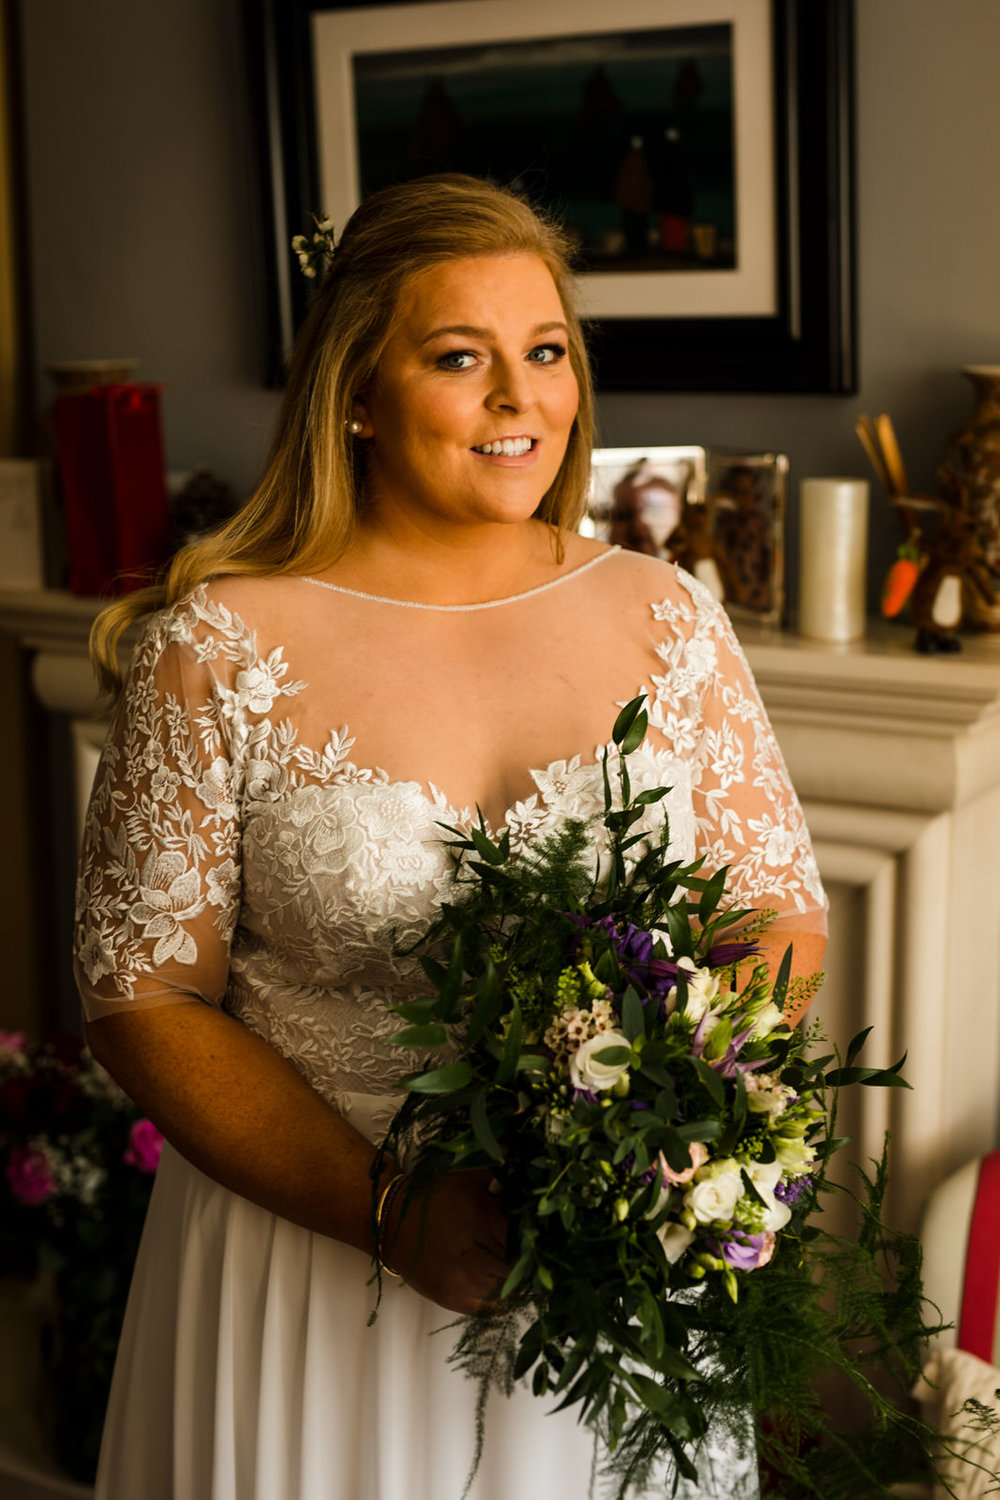 Tinakilly-country-house-wedding-photography-roger-kenny-portraitroom-wicklow-028.jpg